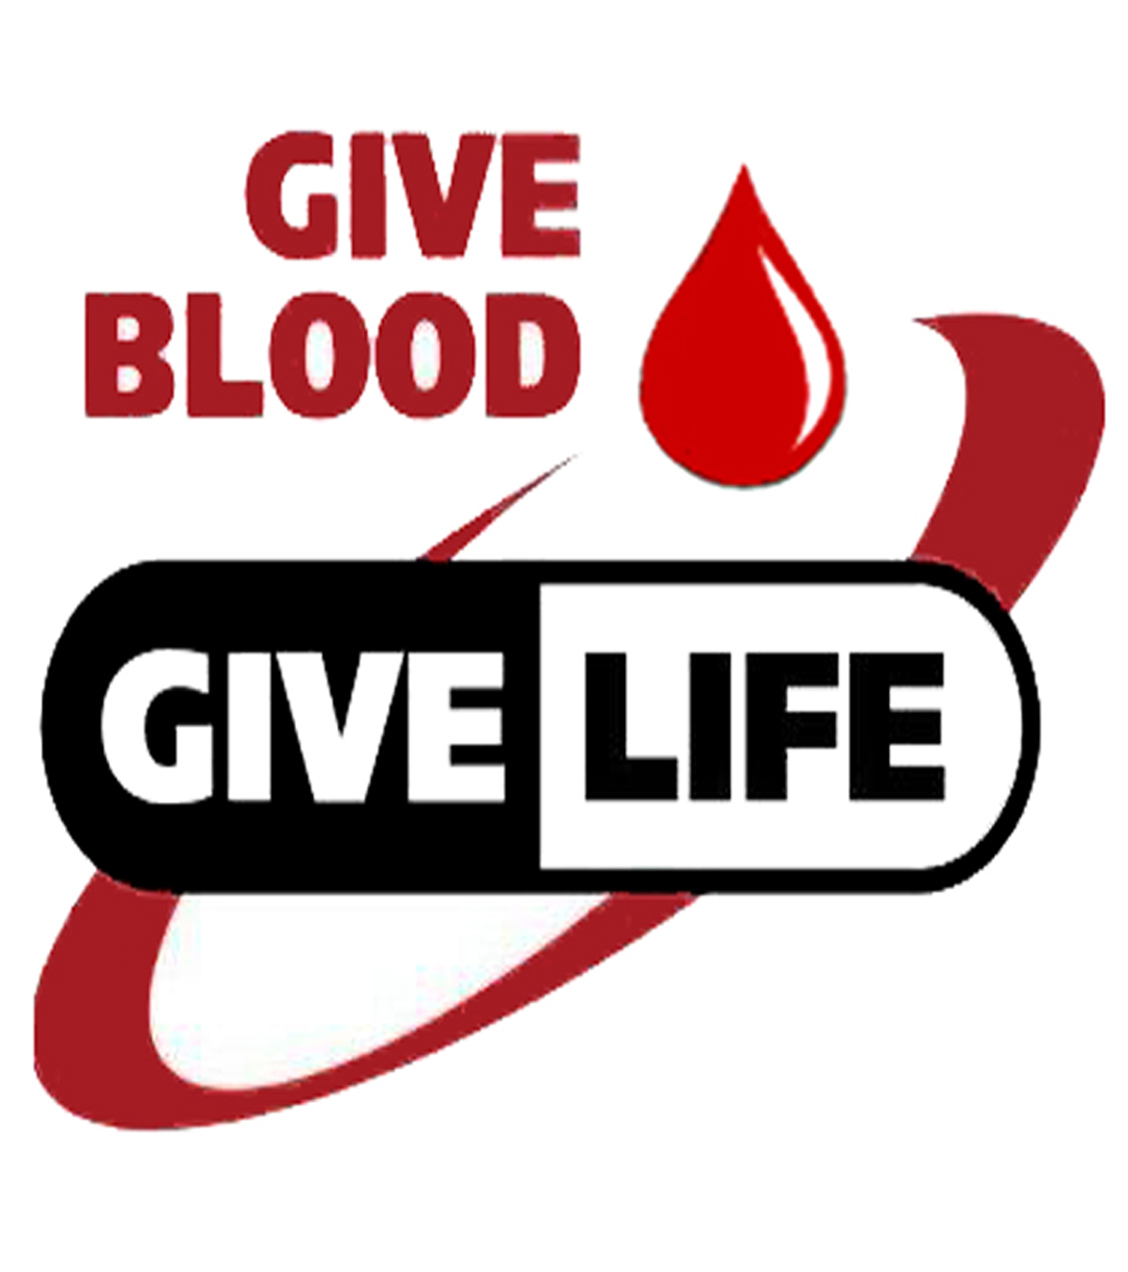 American Red Cross Blood Drive free image.